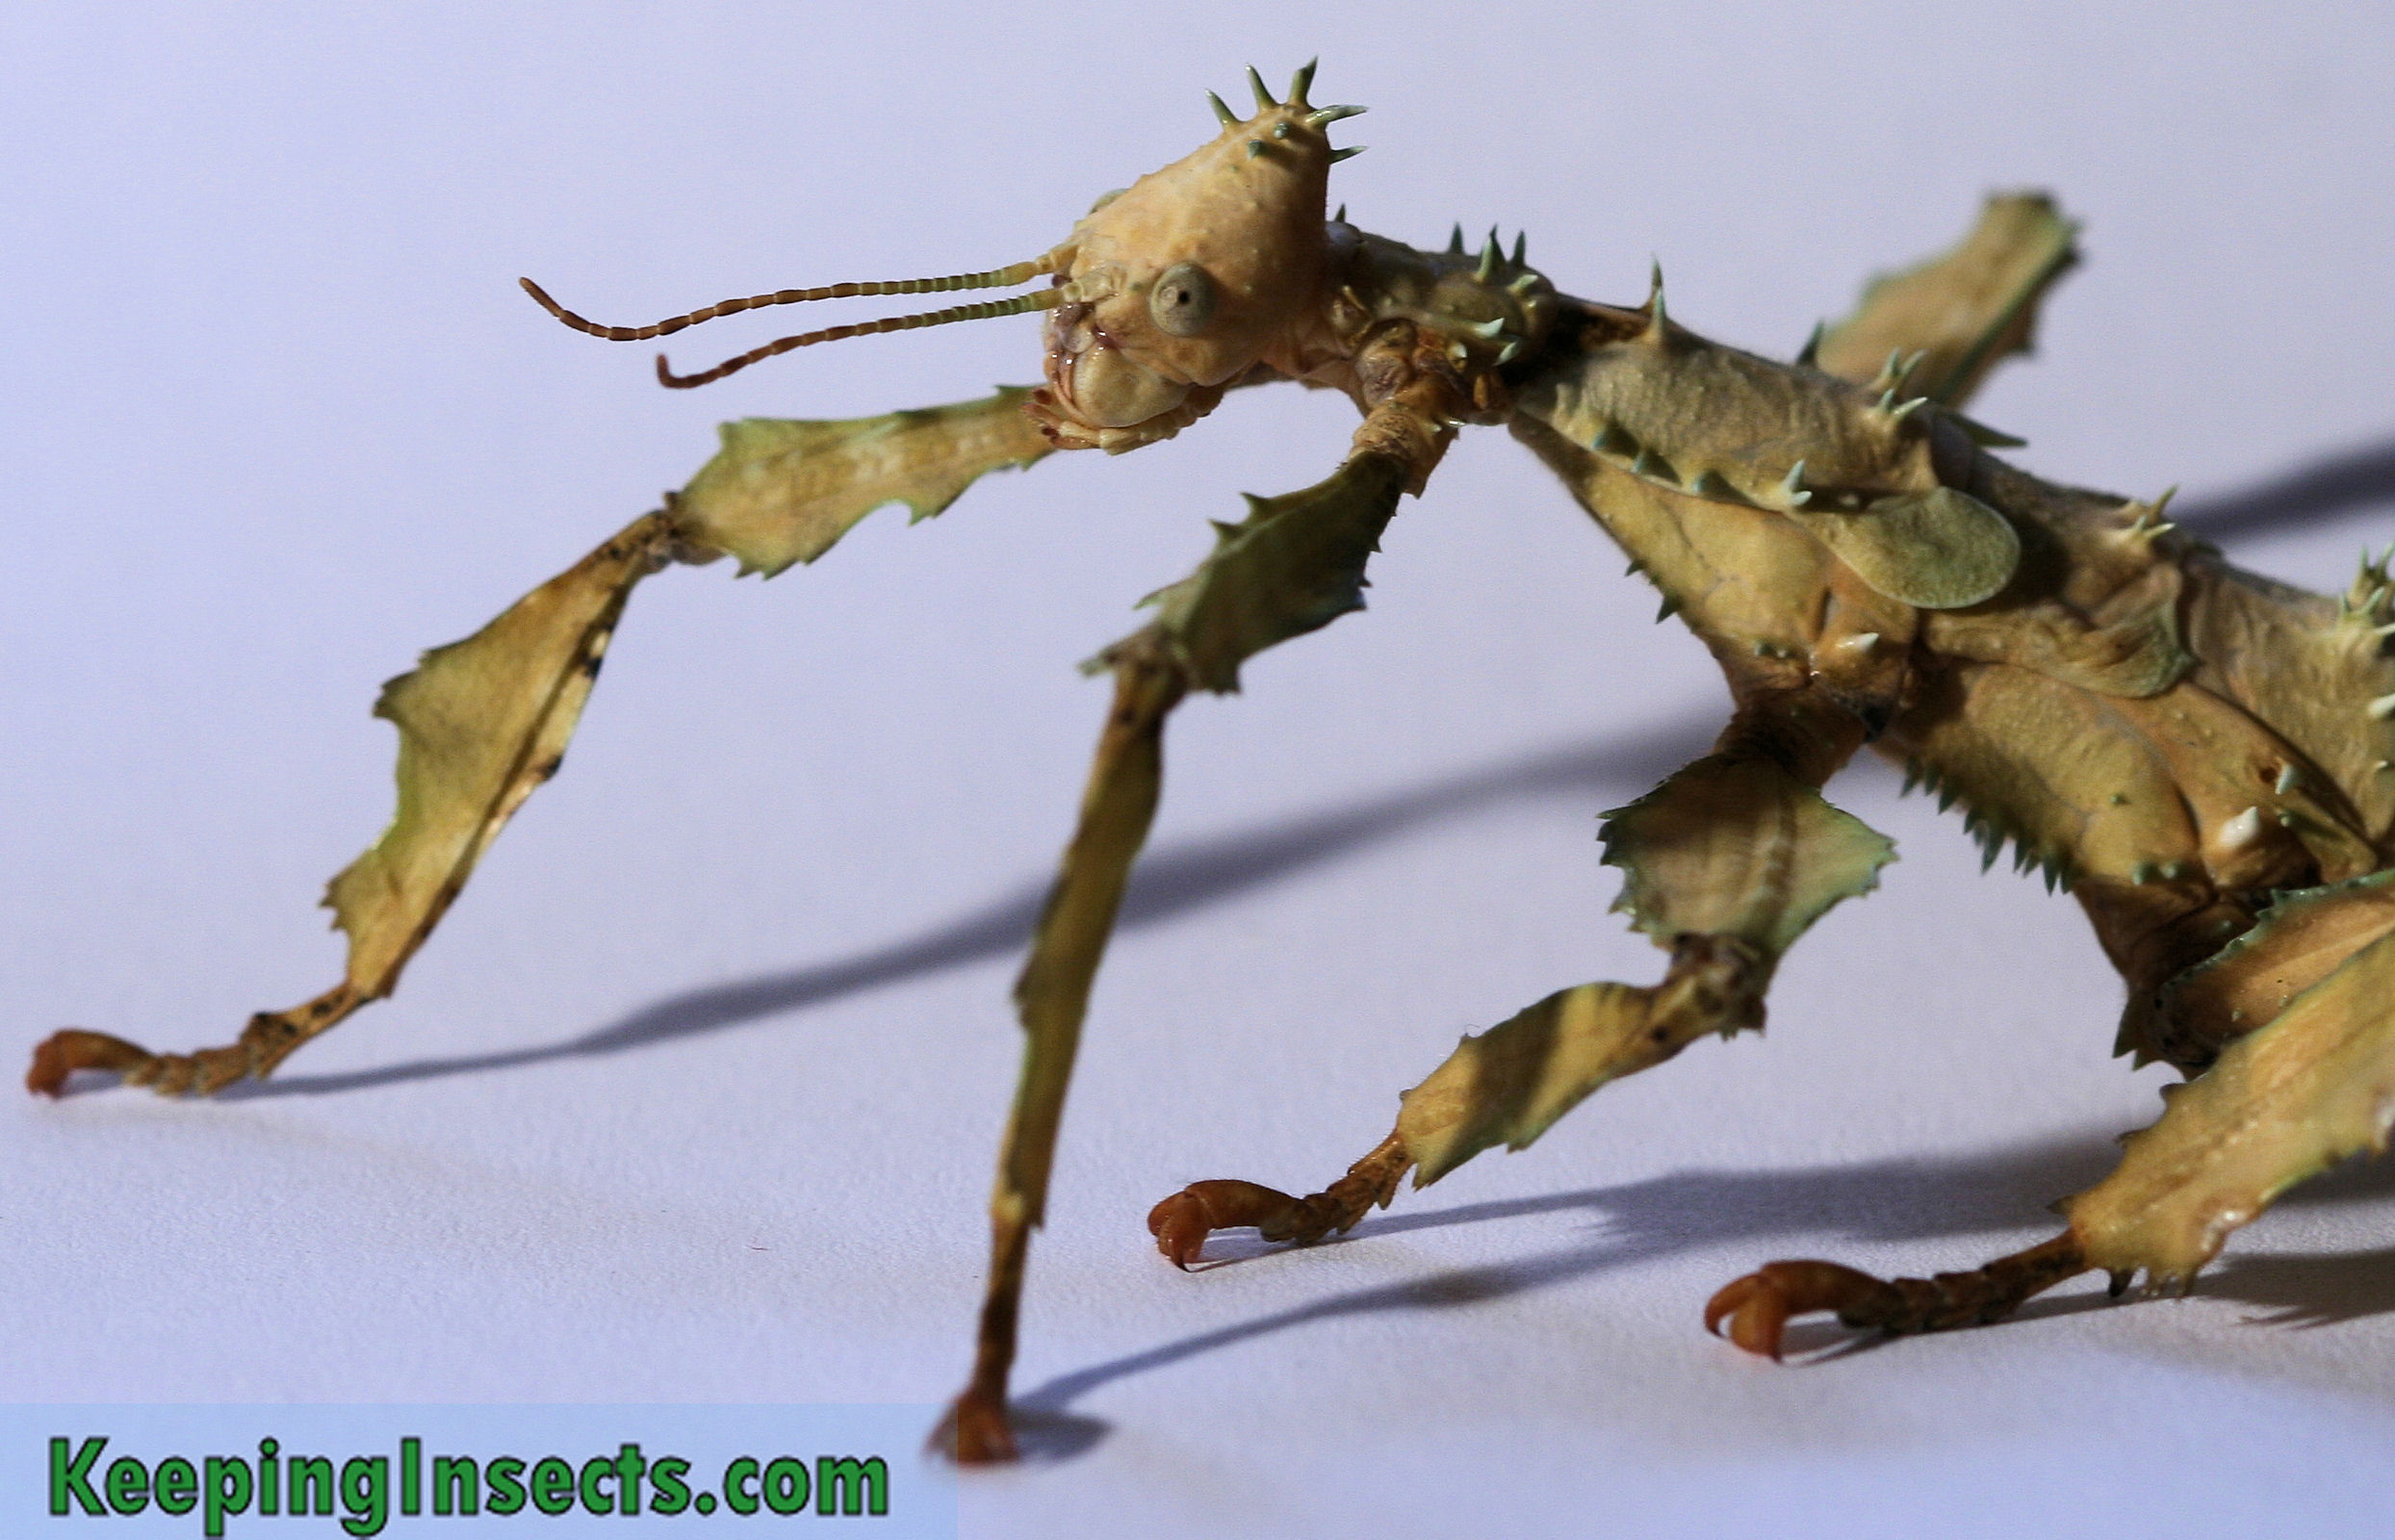 General Stick Insect Info Keeping Insects